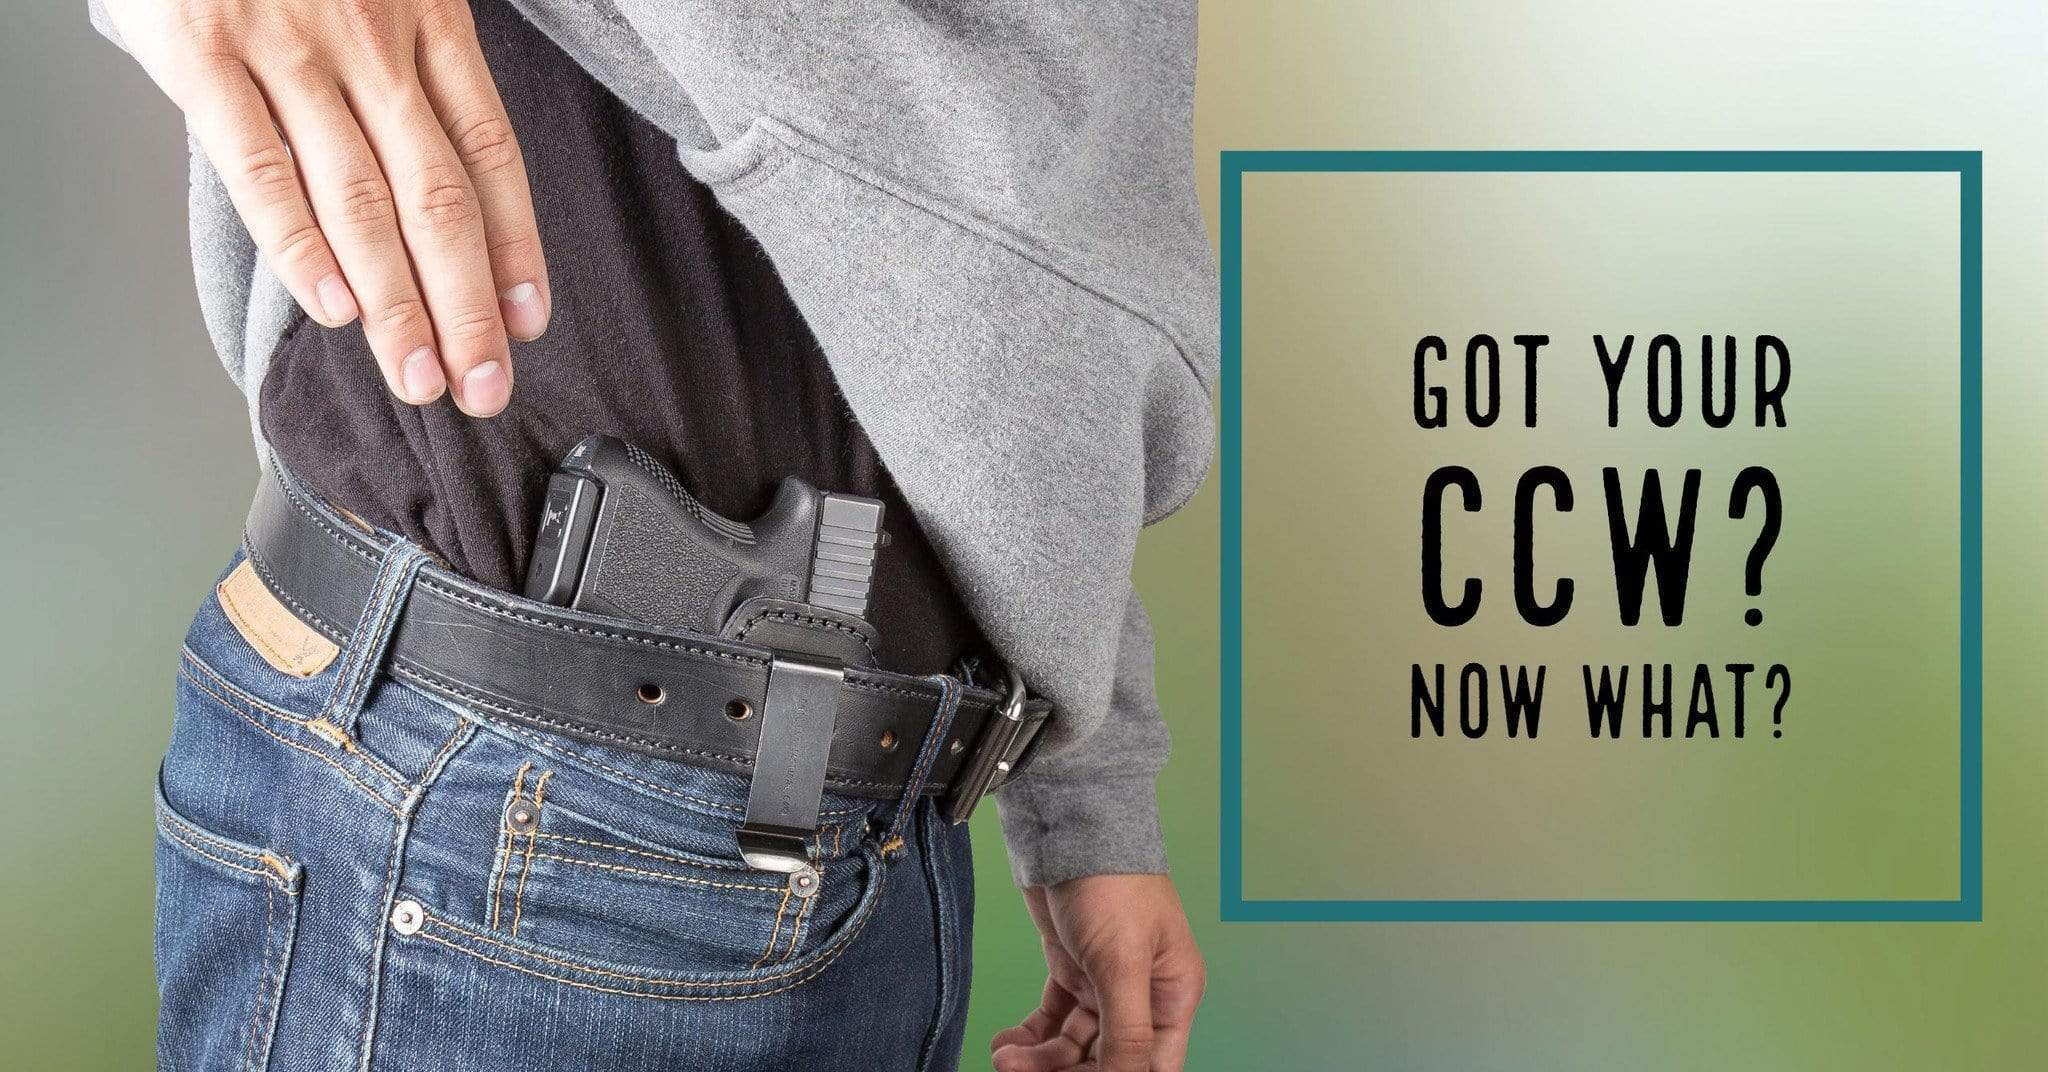 You just received your concealed carry license, now what?